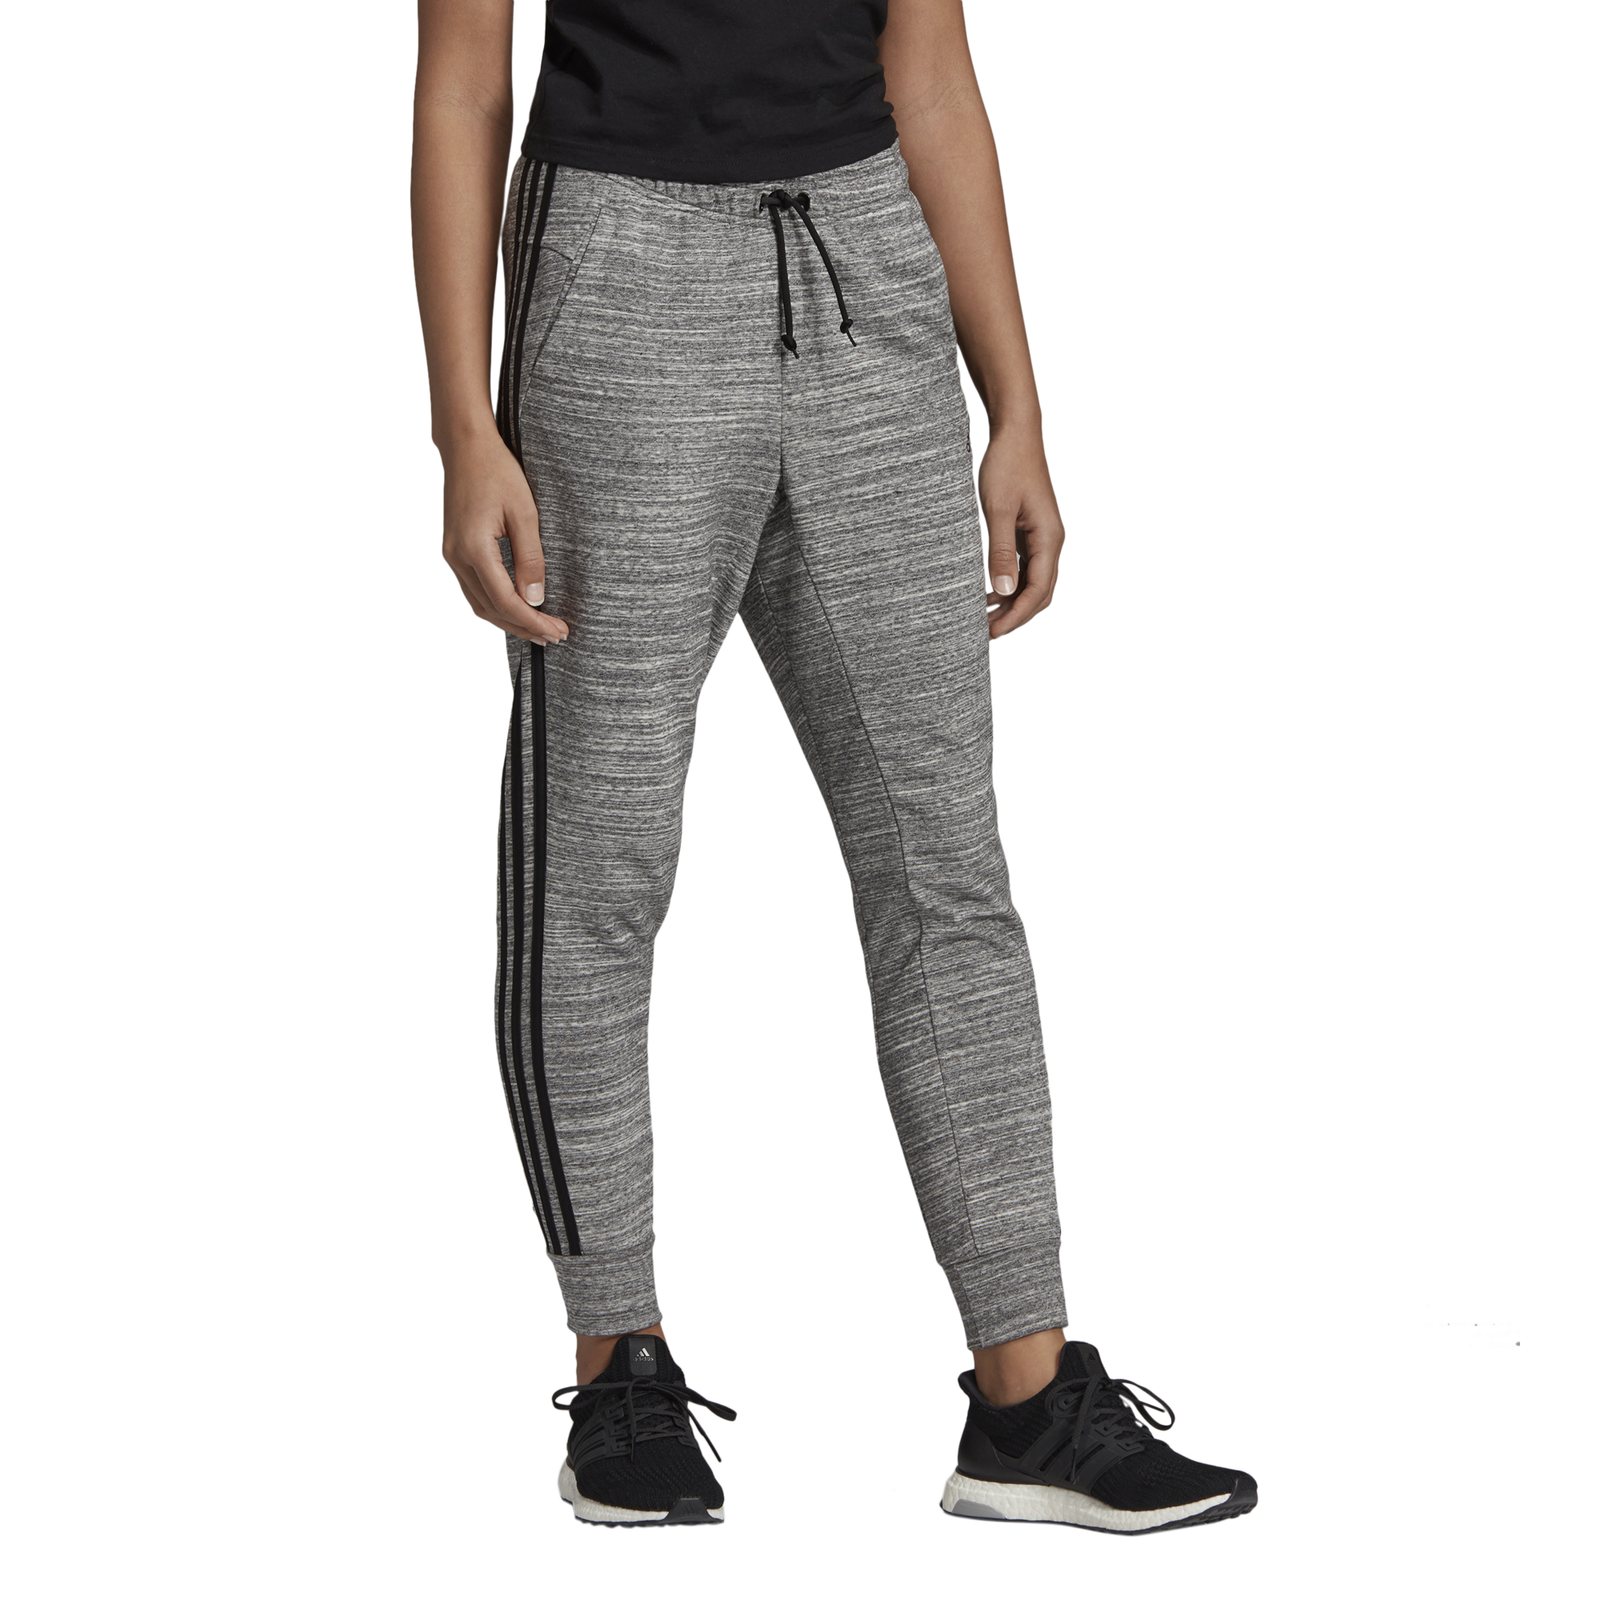 Details about Adidas Core Womens Sport Fitness Trousers Womens Must Haves Melange Pant Grey show original title